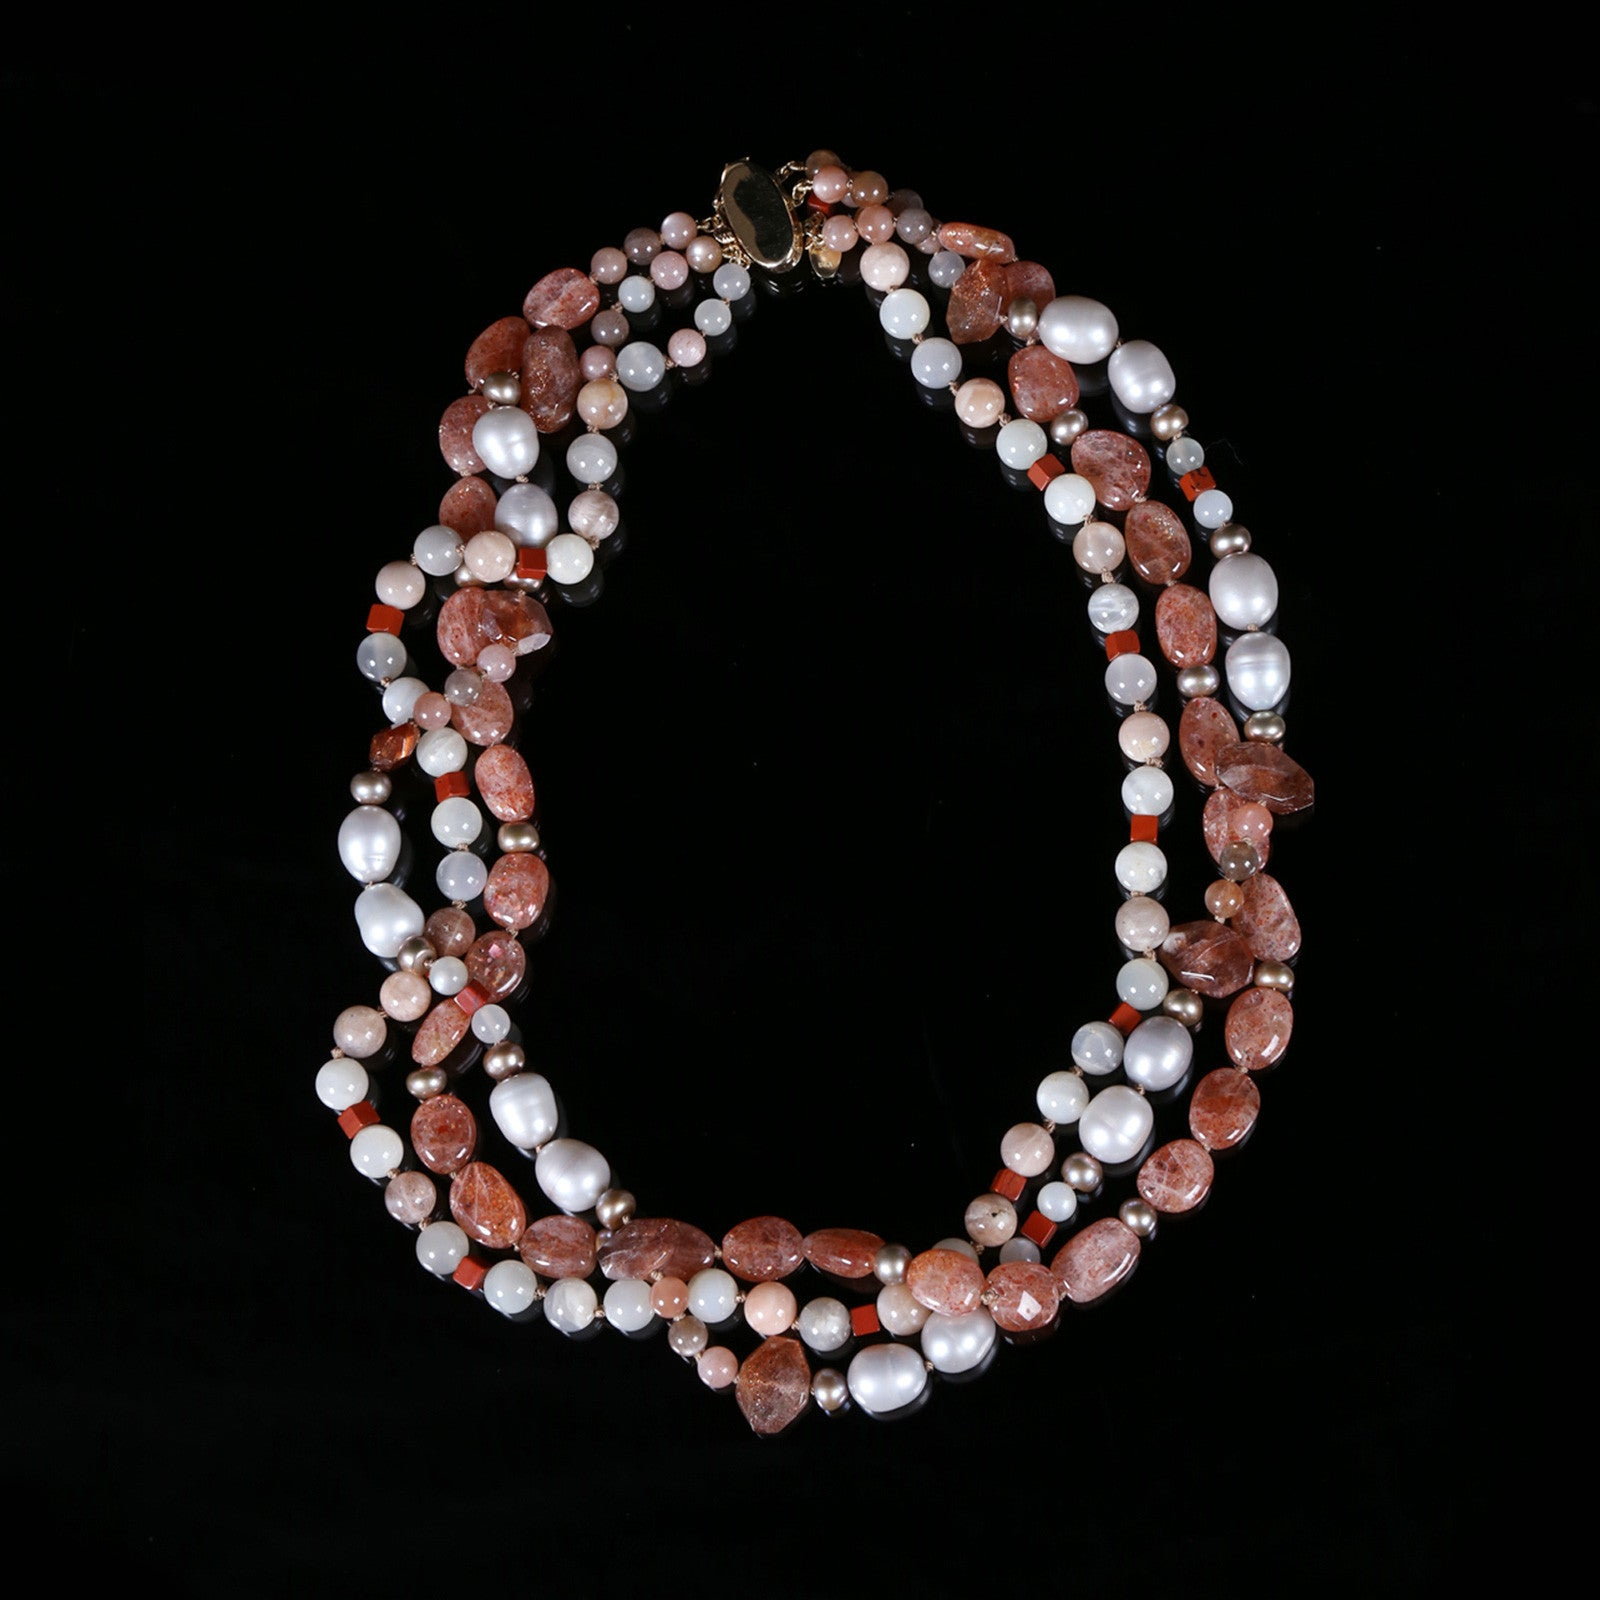 White Orchid Studios | Made in the USA | Handcrafted couture jewelry inspired by nature. |  A three strand, torsade necklace of richly vibrant sunstone and glowing moonstone that alternate with jasper and freshwater button pearls. This necklace ends with a 14kt yellow gold clasp, 20.5""